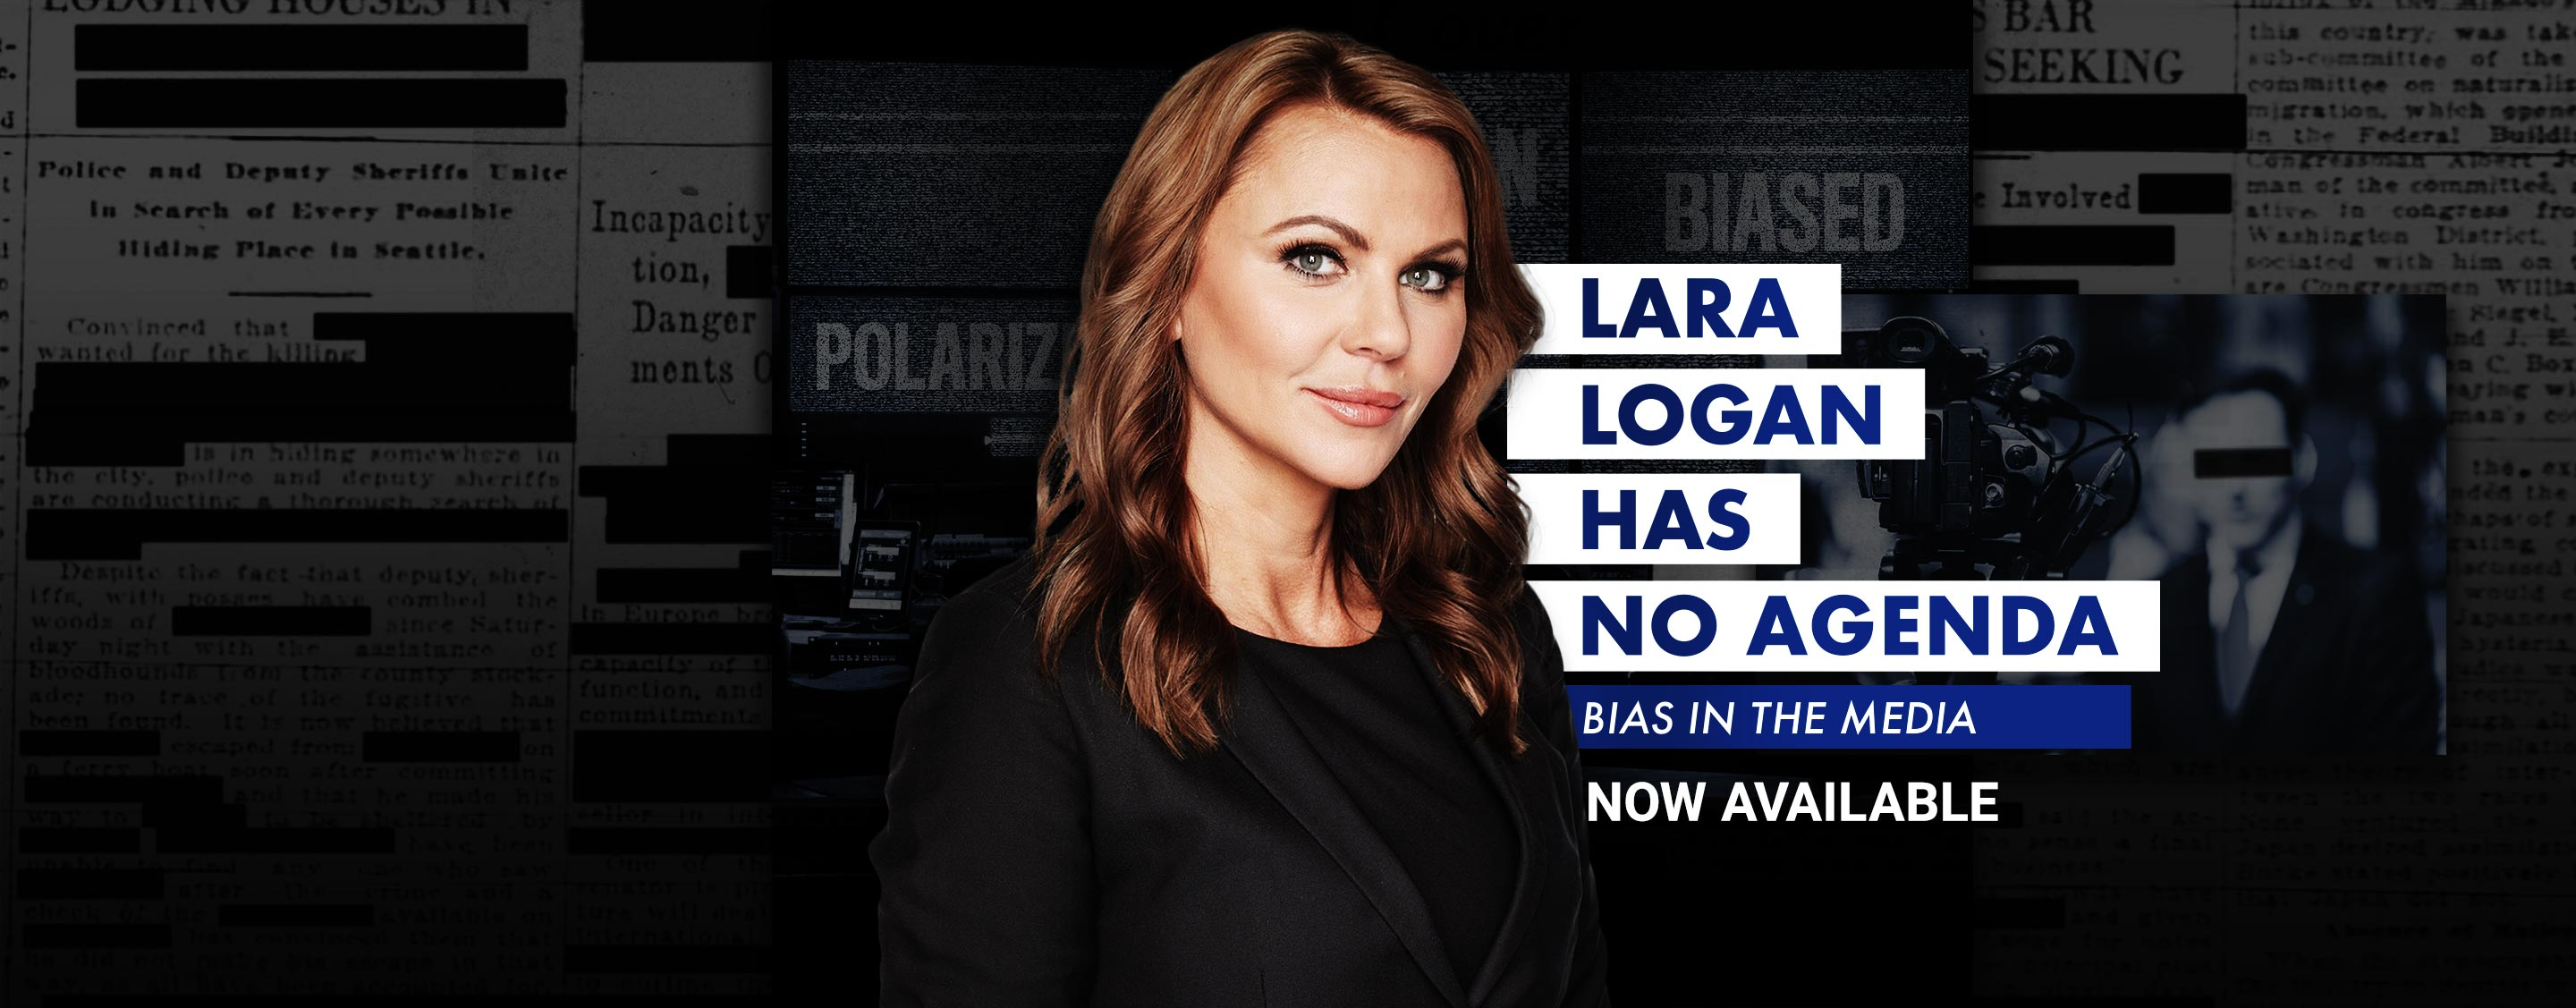 Star of the show, Lara Logan, looking pensive outside the U.S.-Mexico border.